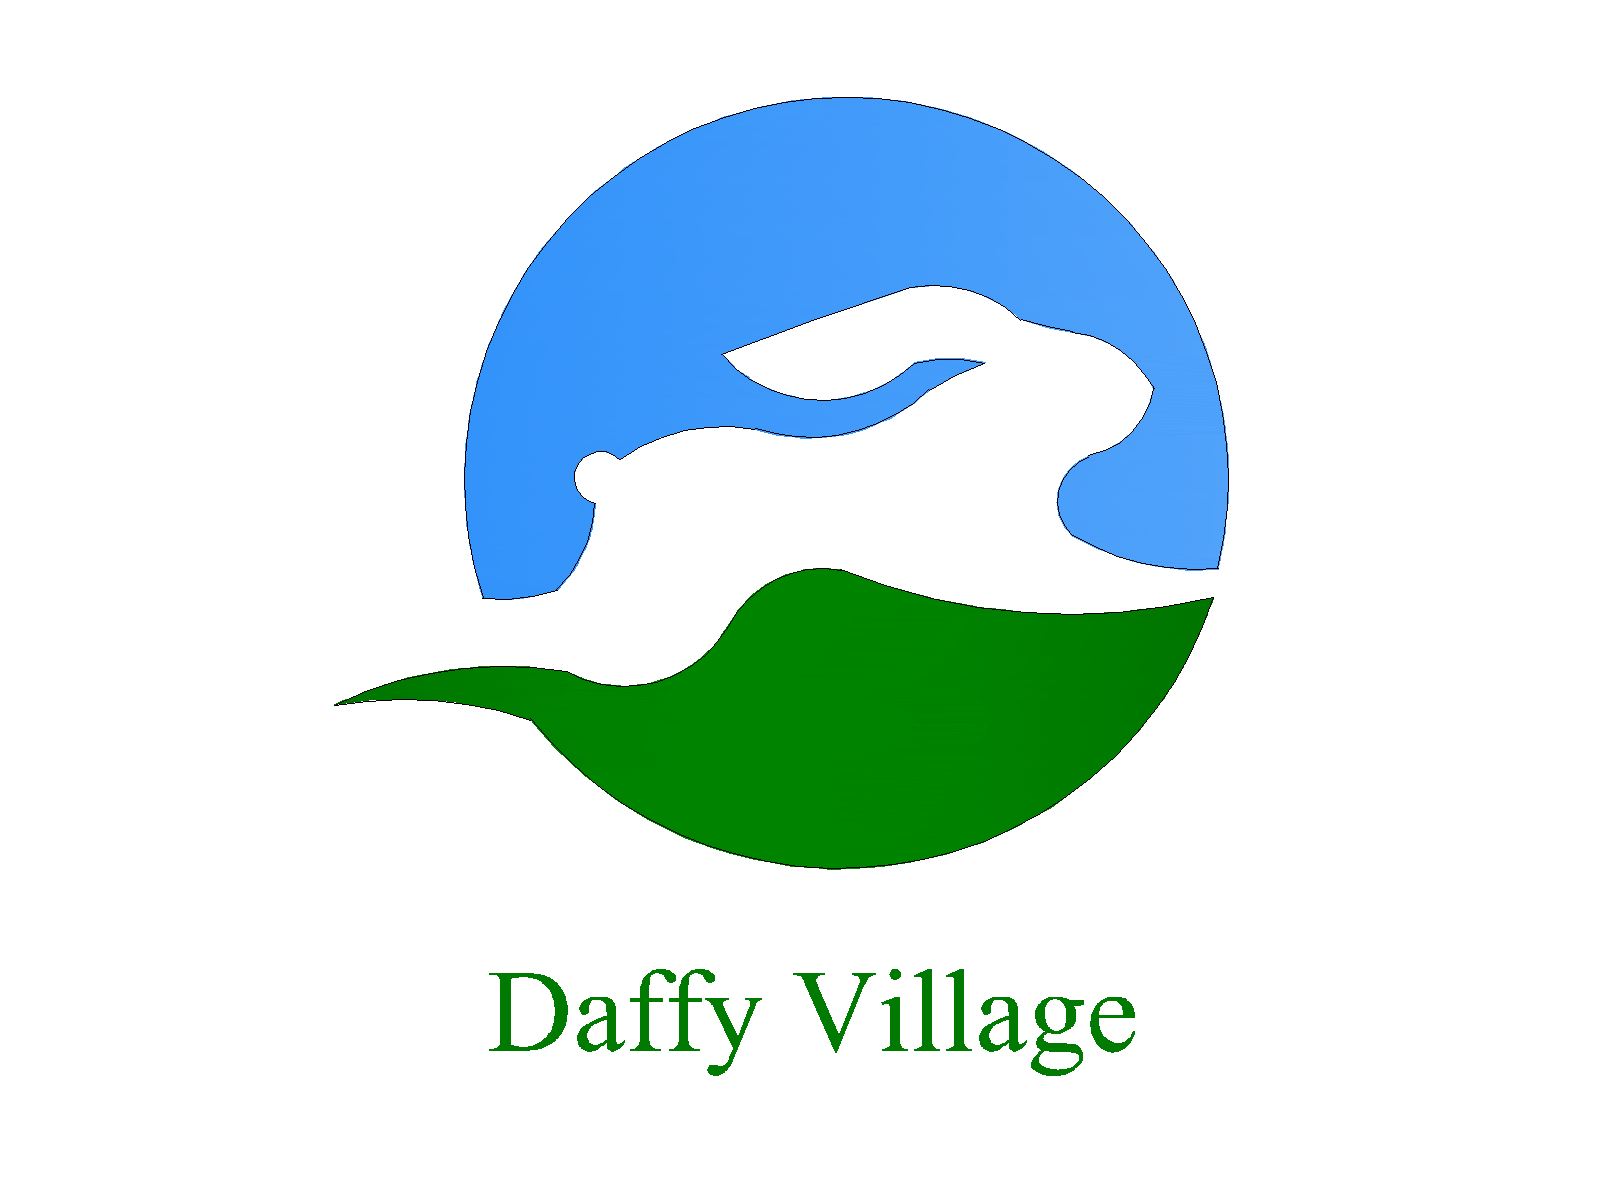 Daffy Village .com lgoo